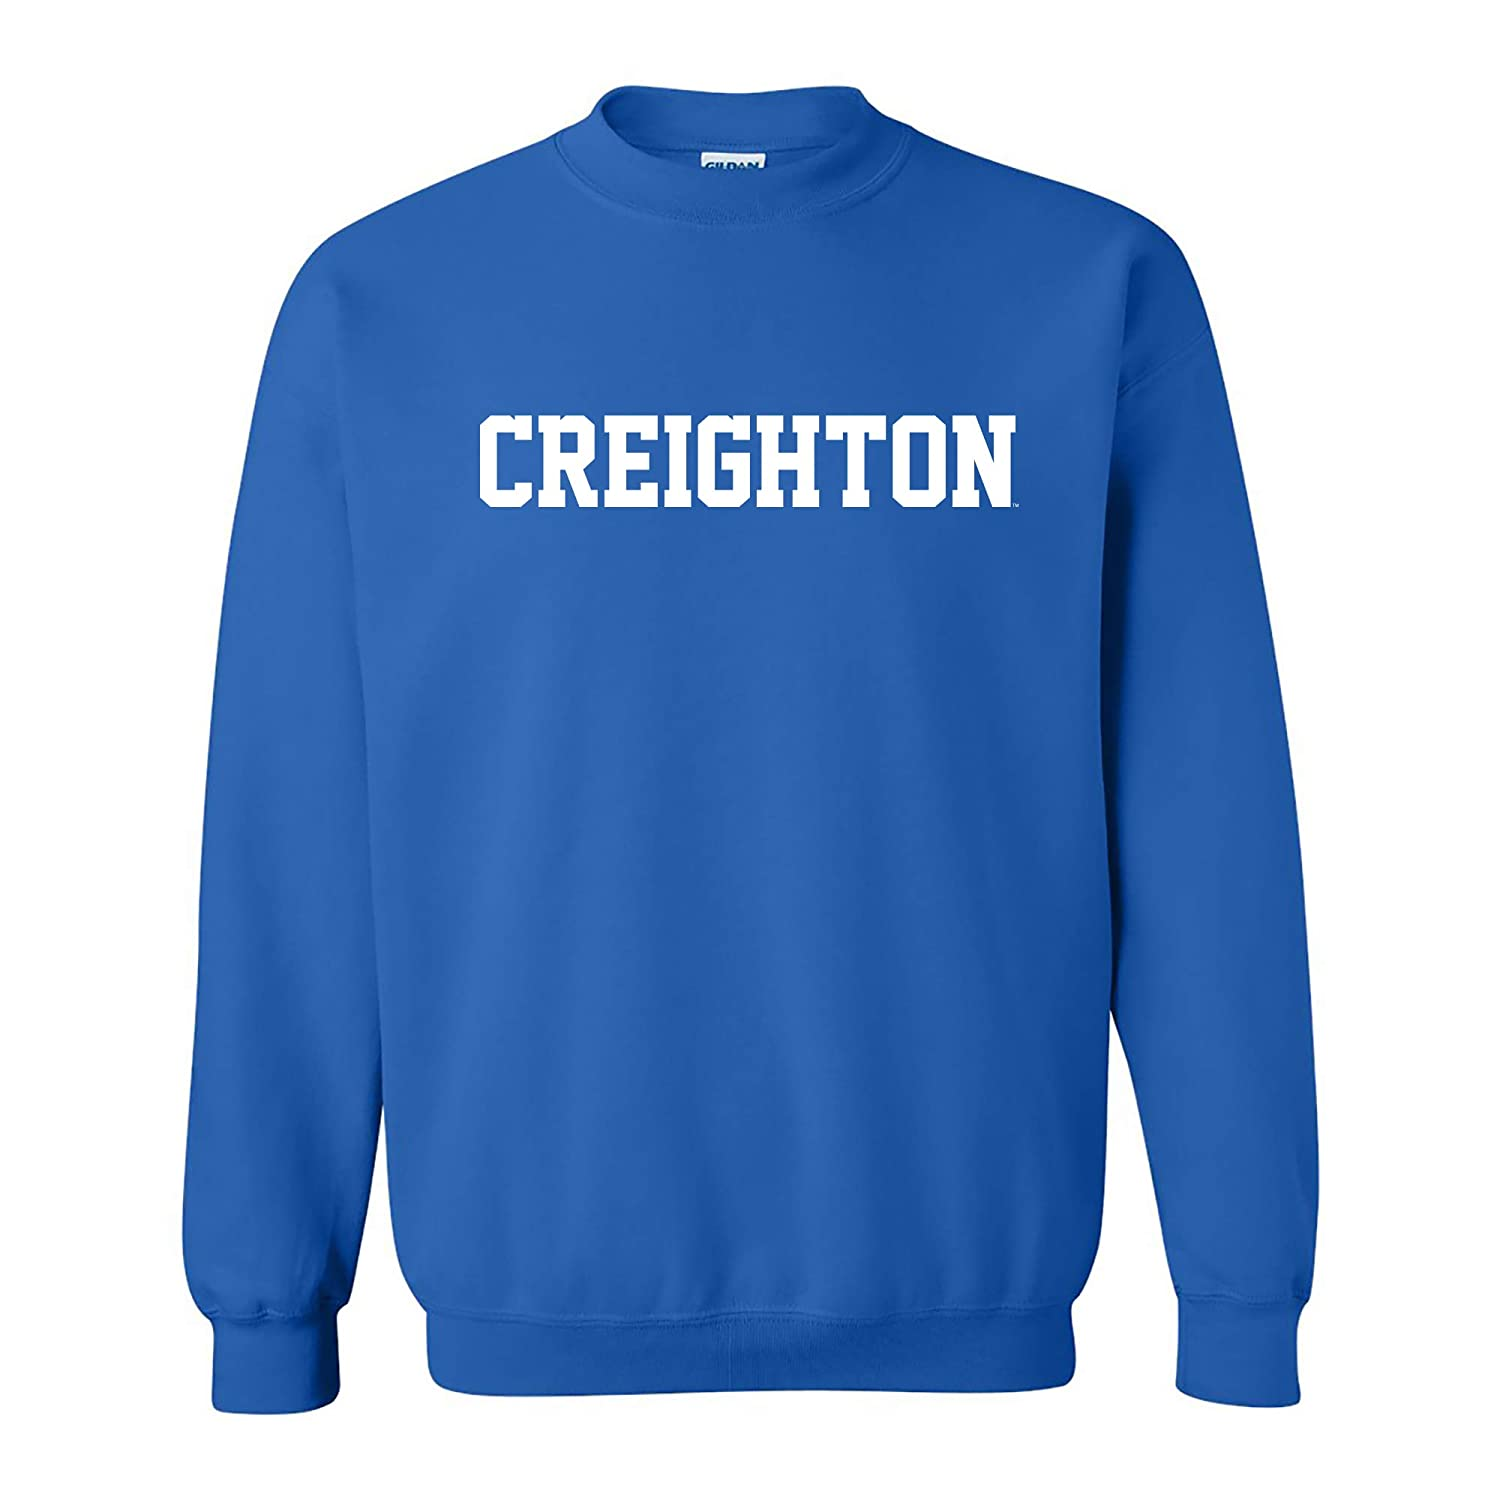 Shop from 1000 unique NCAA Basic Block Team Color Crewneck College University